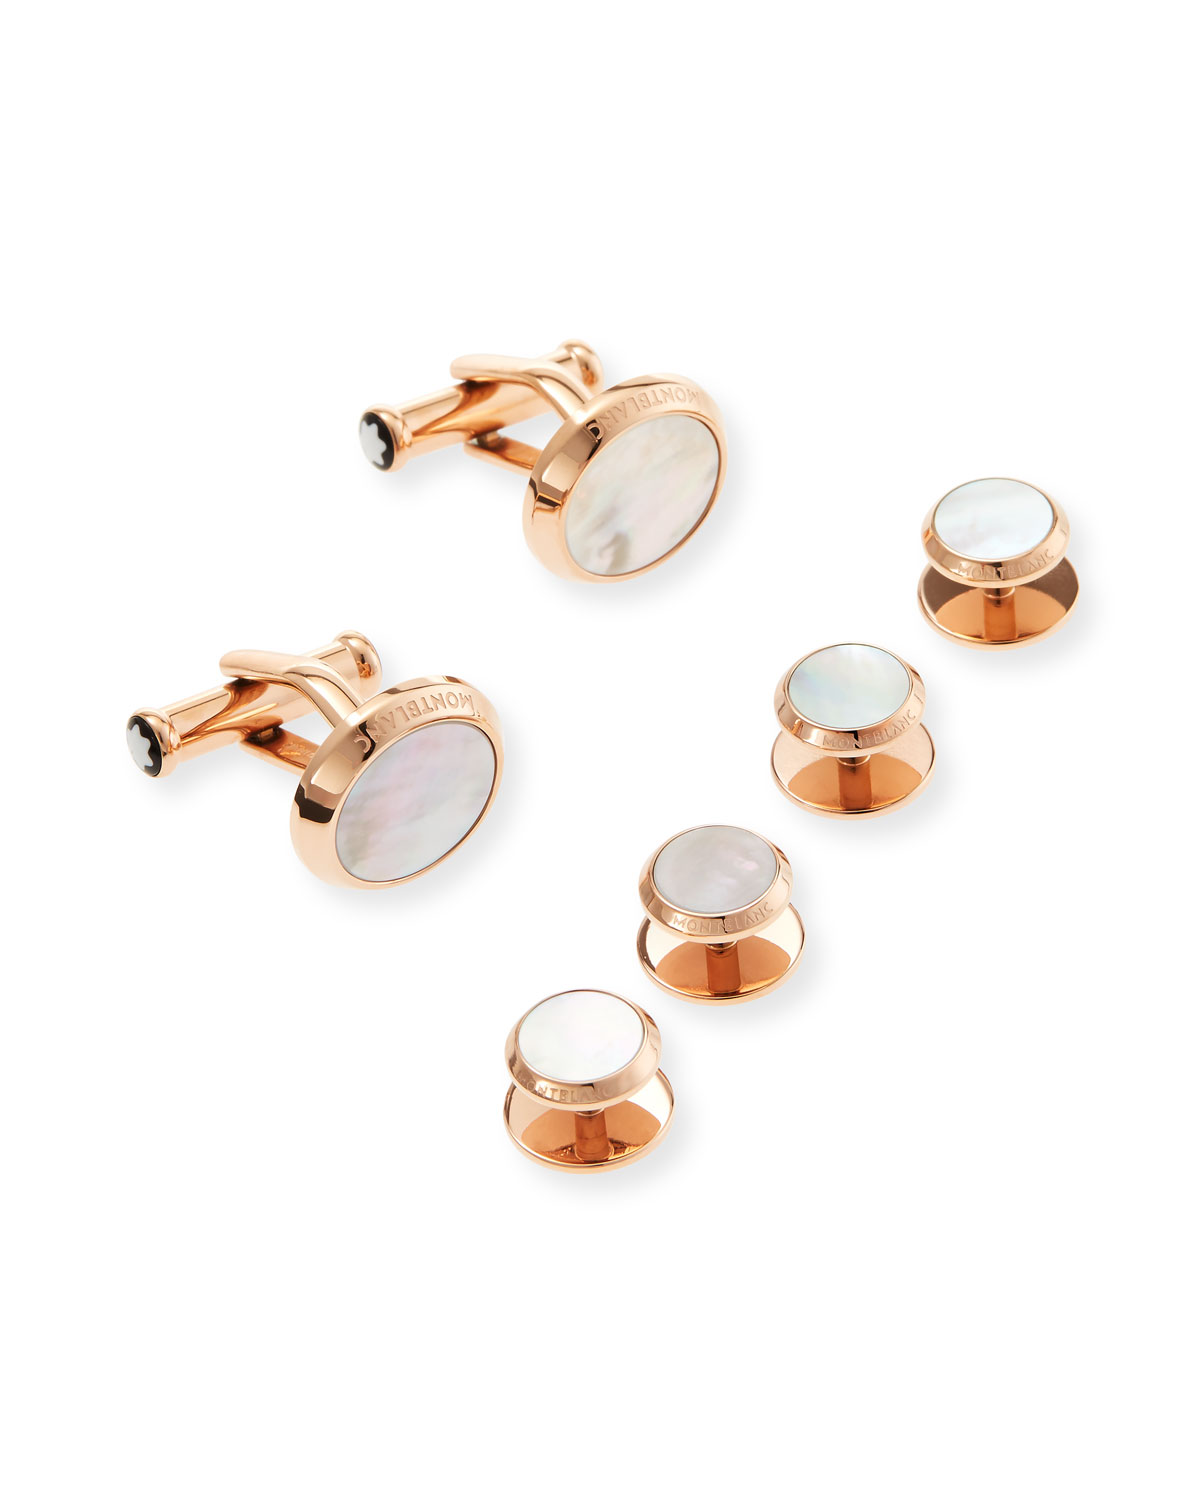 Montblanc Accessories MEN'S ROSE GOLD MOTHER-OF-PEARL STUD & CUFFLINK SET